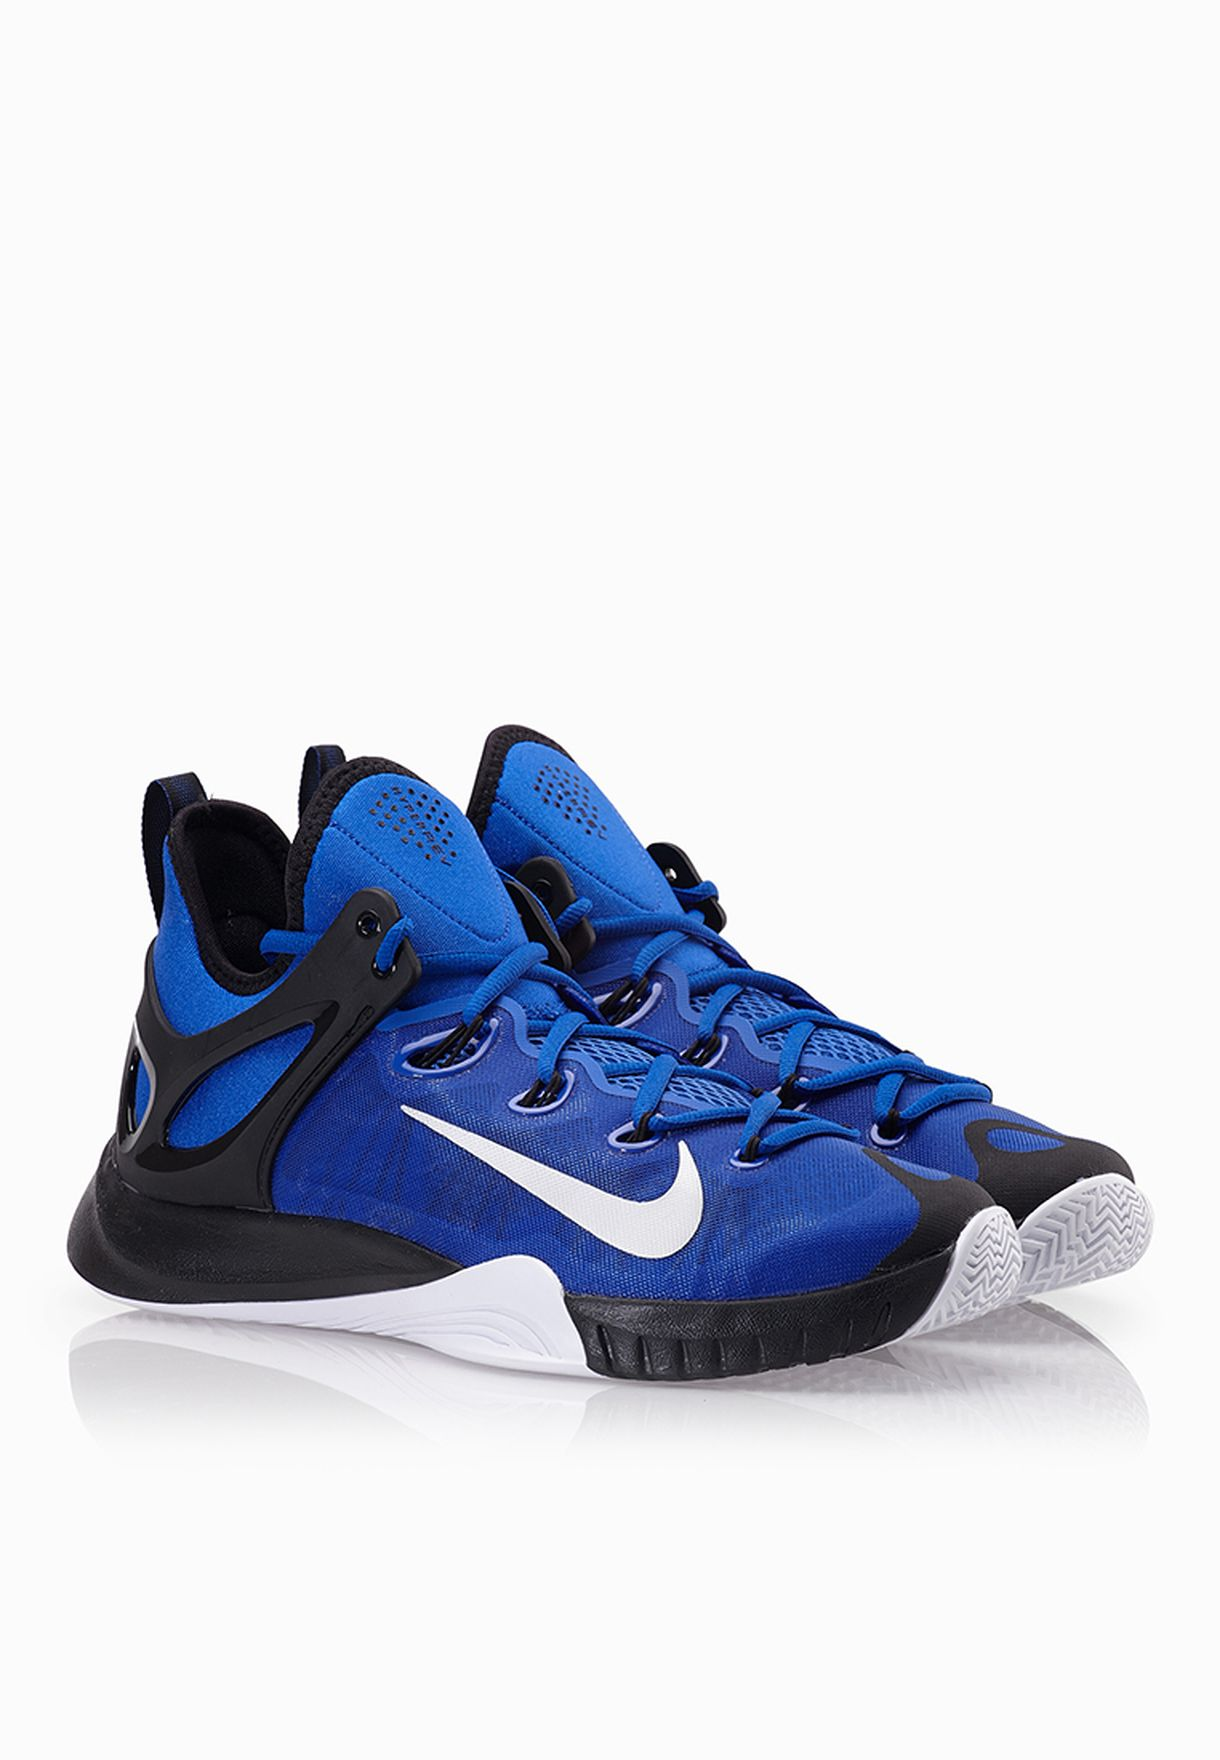 get cheap 051cb 406d5 ... spain shop nike blue zoom hyperrev 2015 705370 400 for men in uae  ni727sh29wmg ce48f 2146a